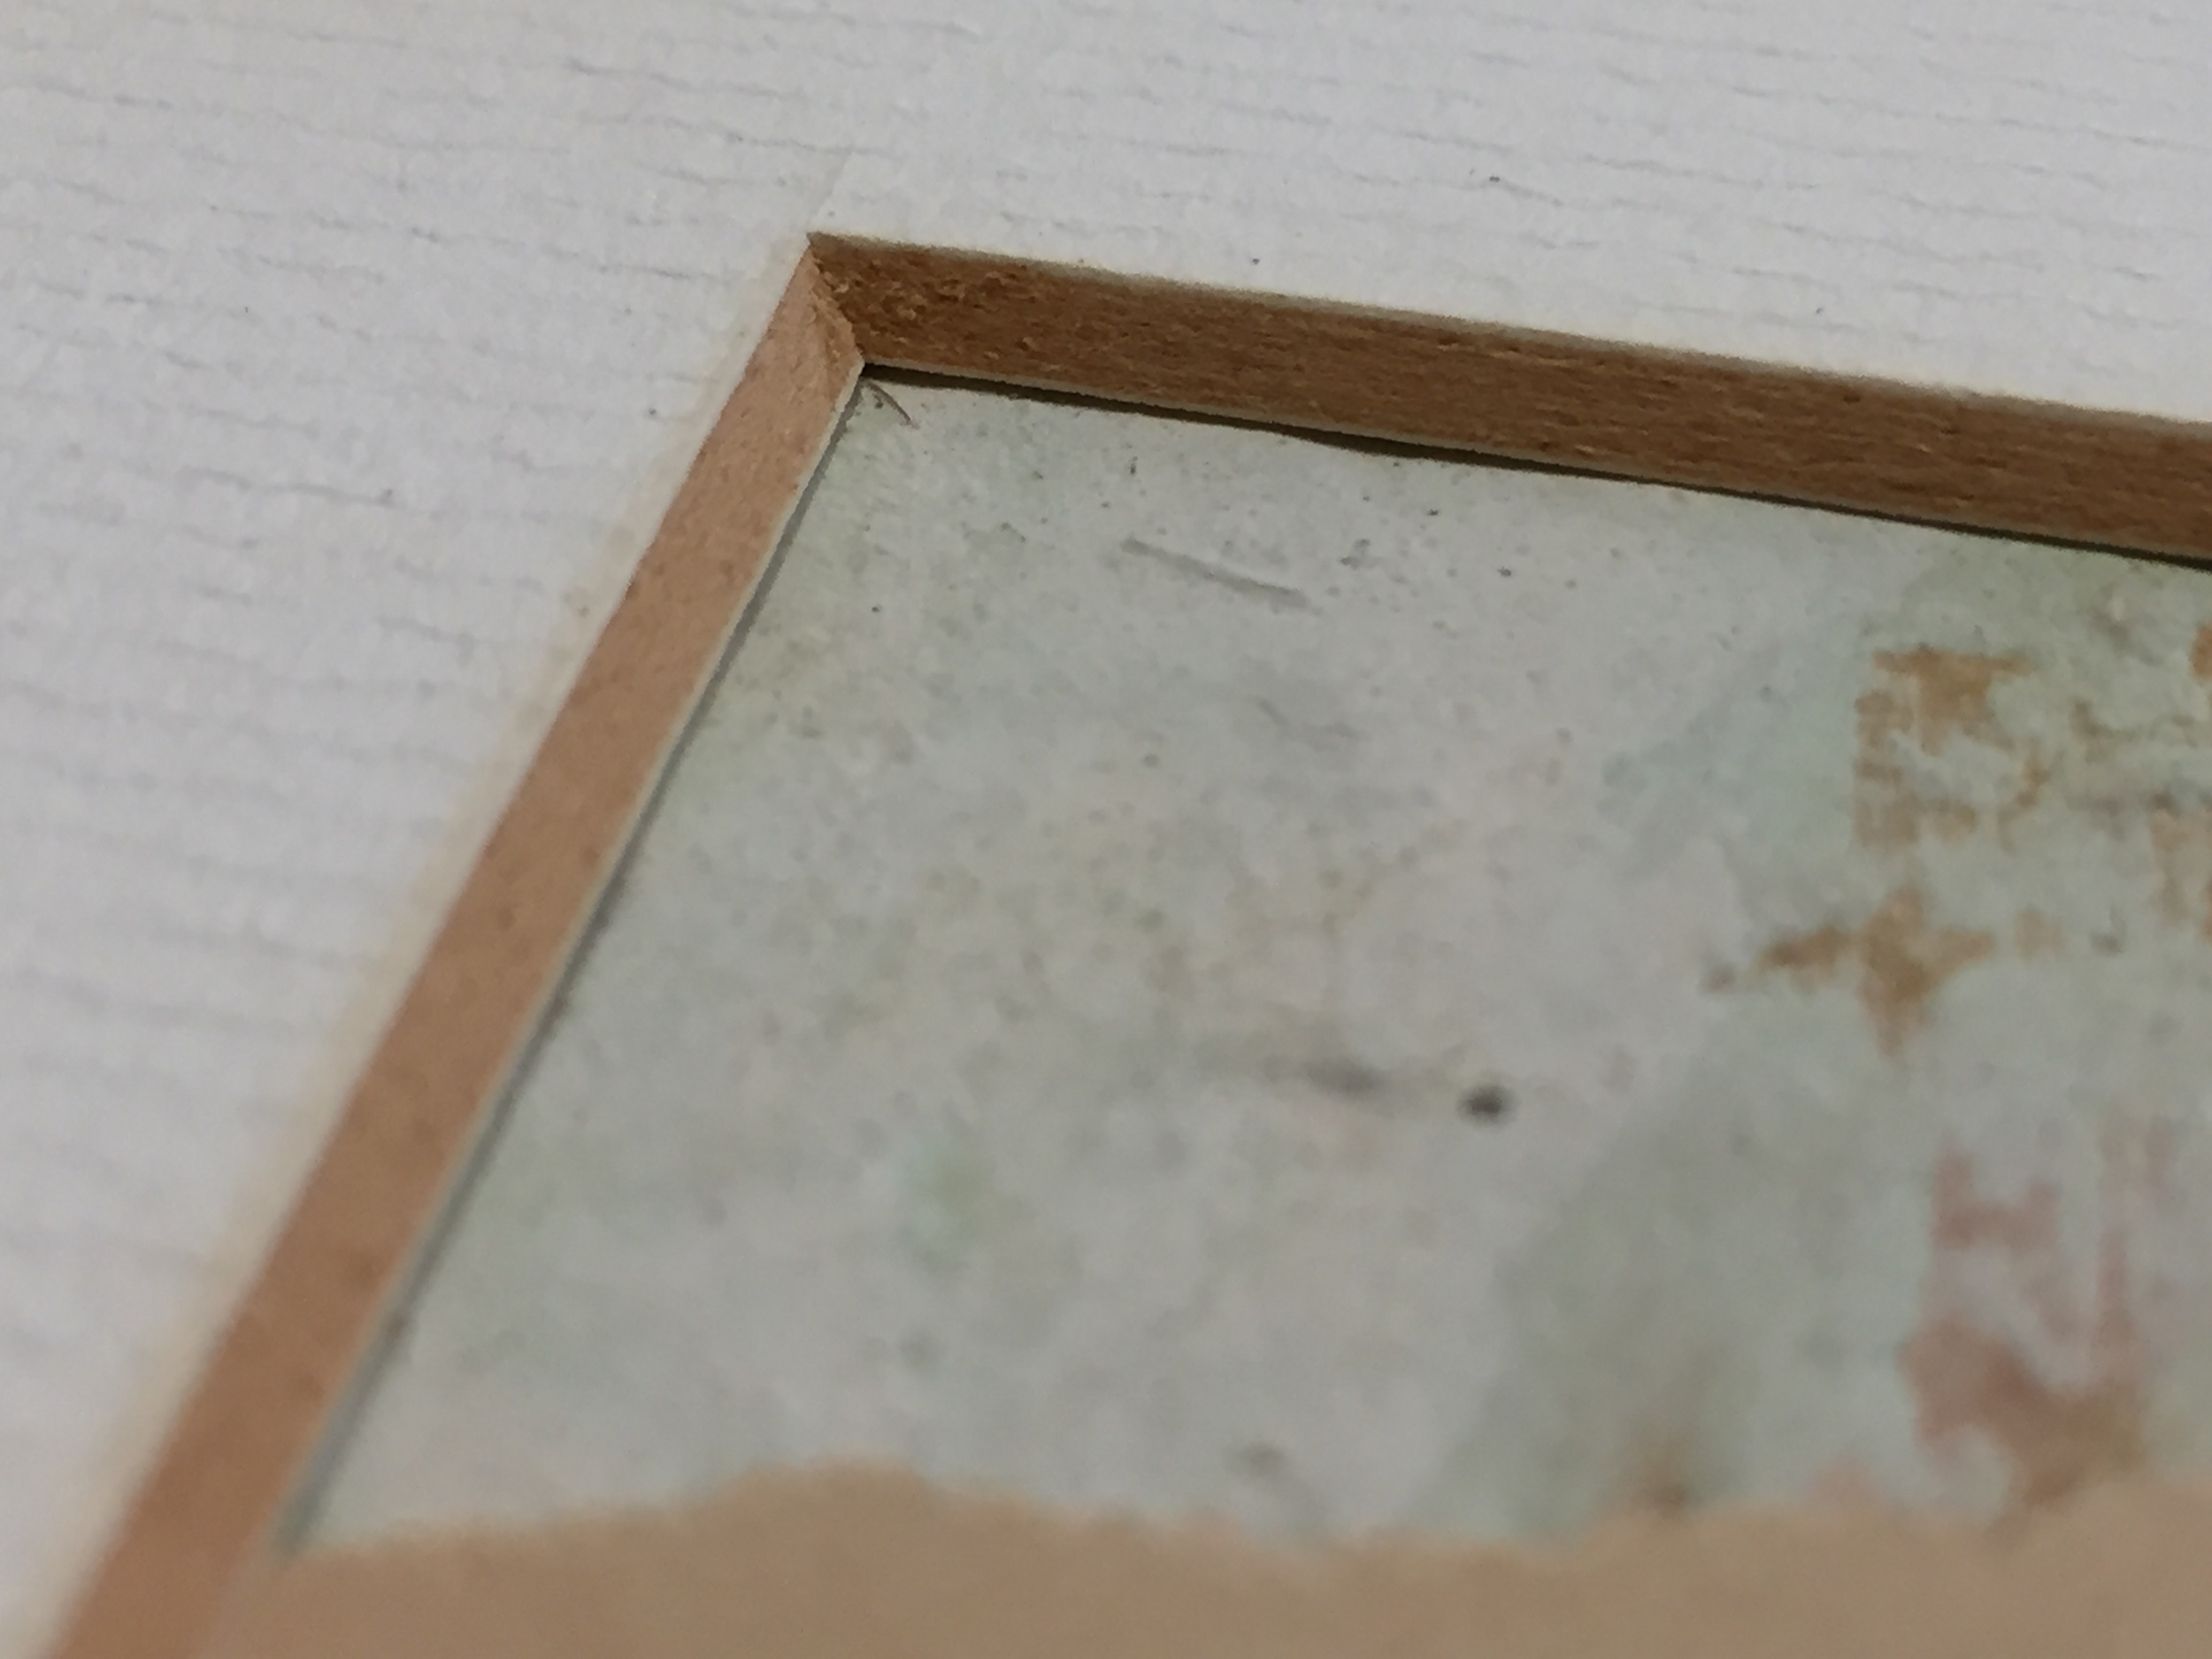 Discoloration in the matboard indicated by the darkened beveled edge is evidence that acid is present.